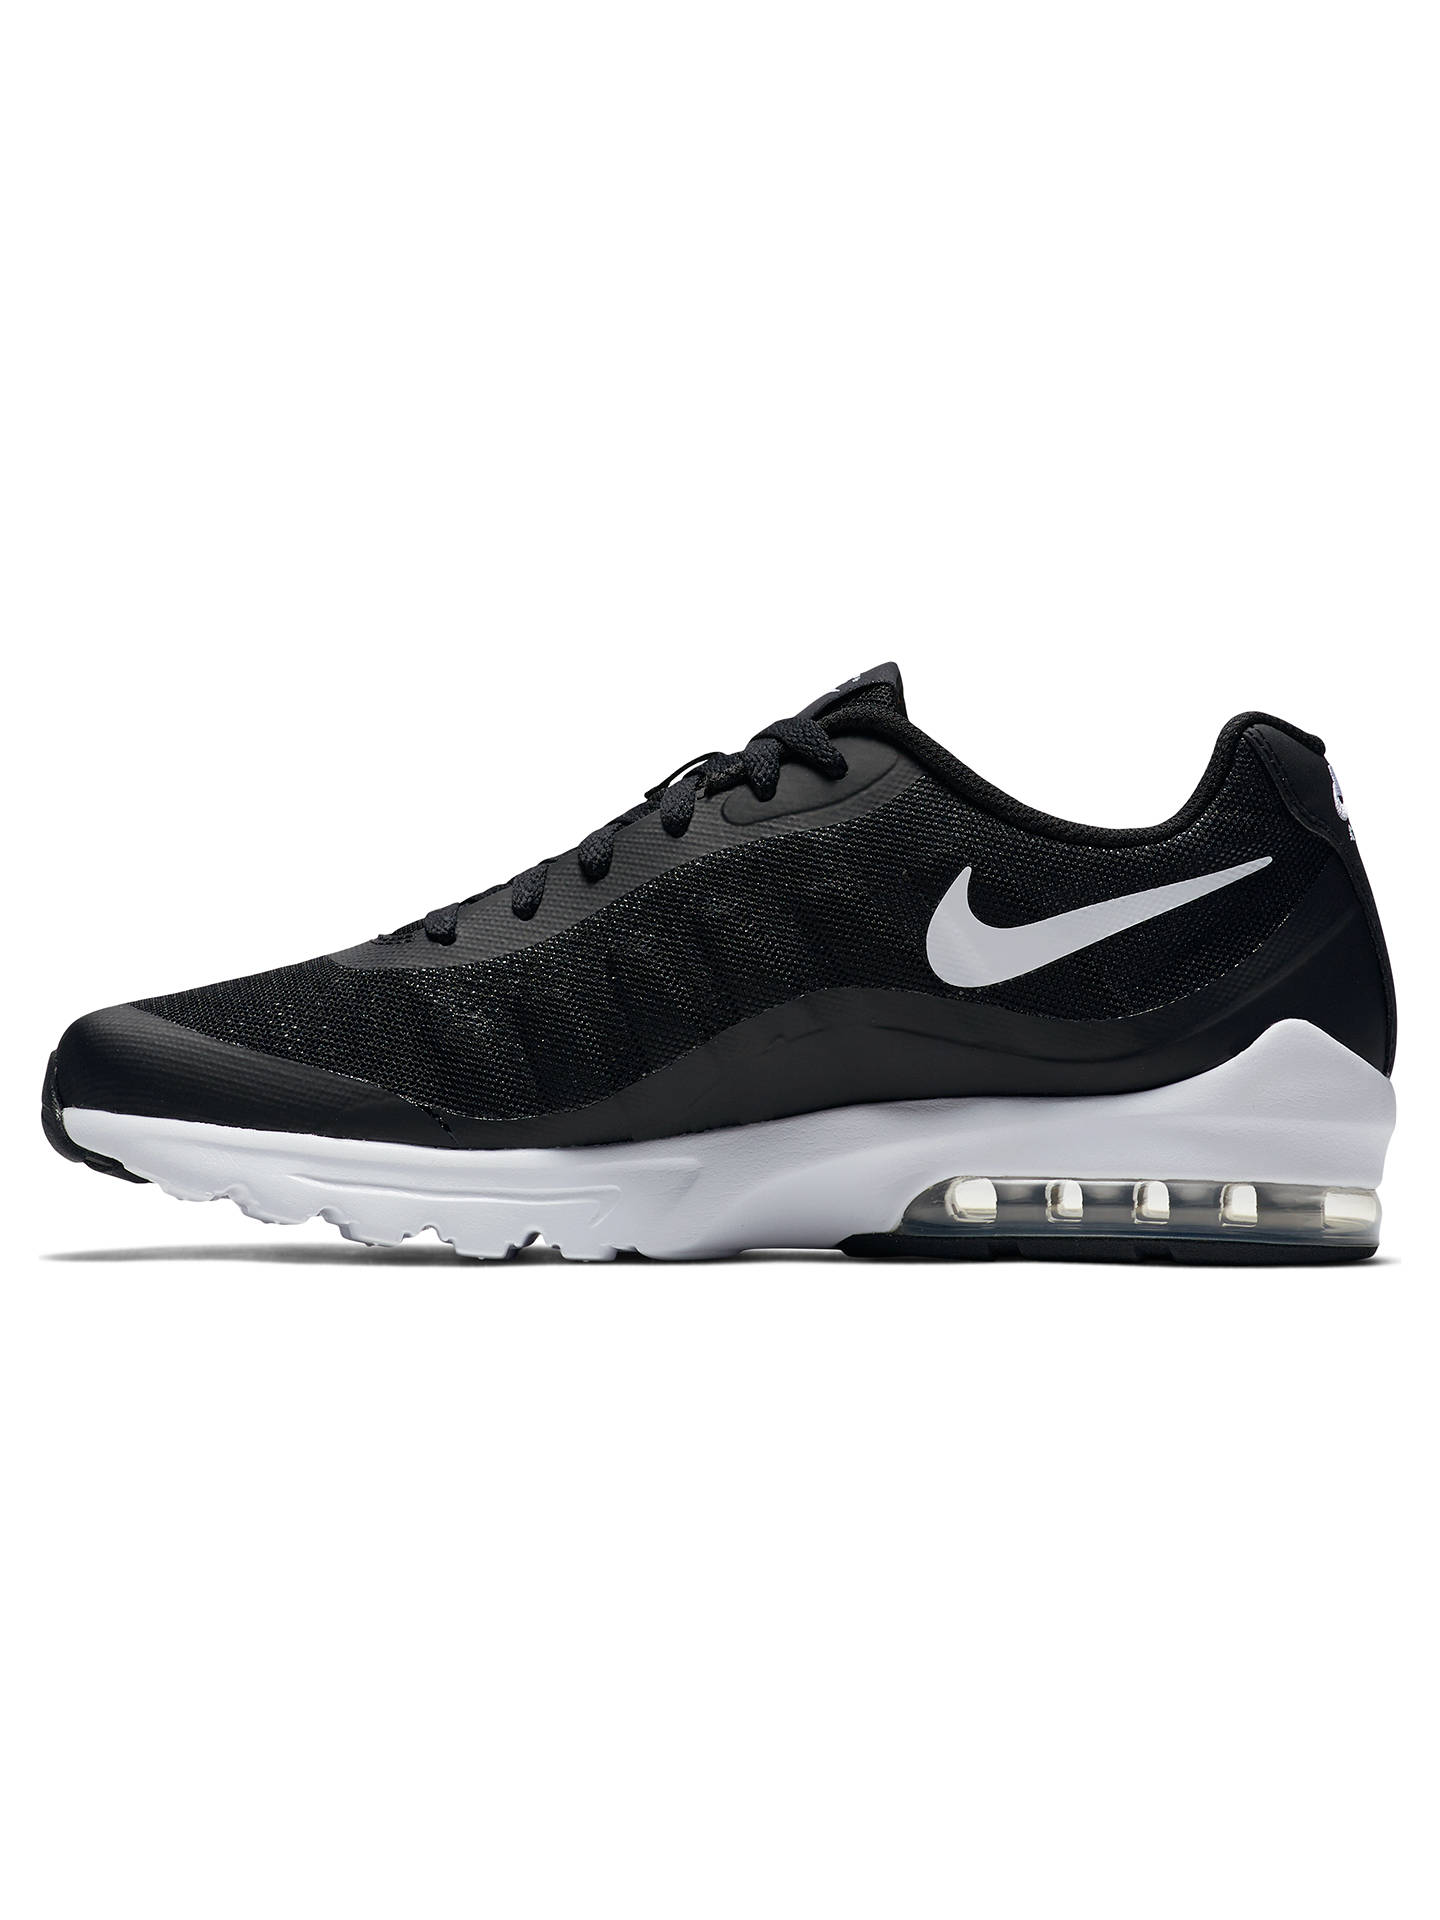 huge selection of a6ac6 870d0 ... Buy Nike Air Max Invigor Men s Trainers, Black White, 10 Online at  johnlewis ...